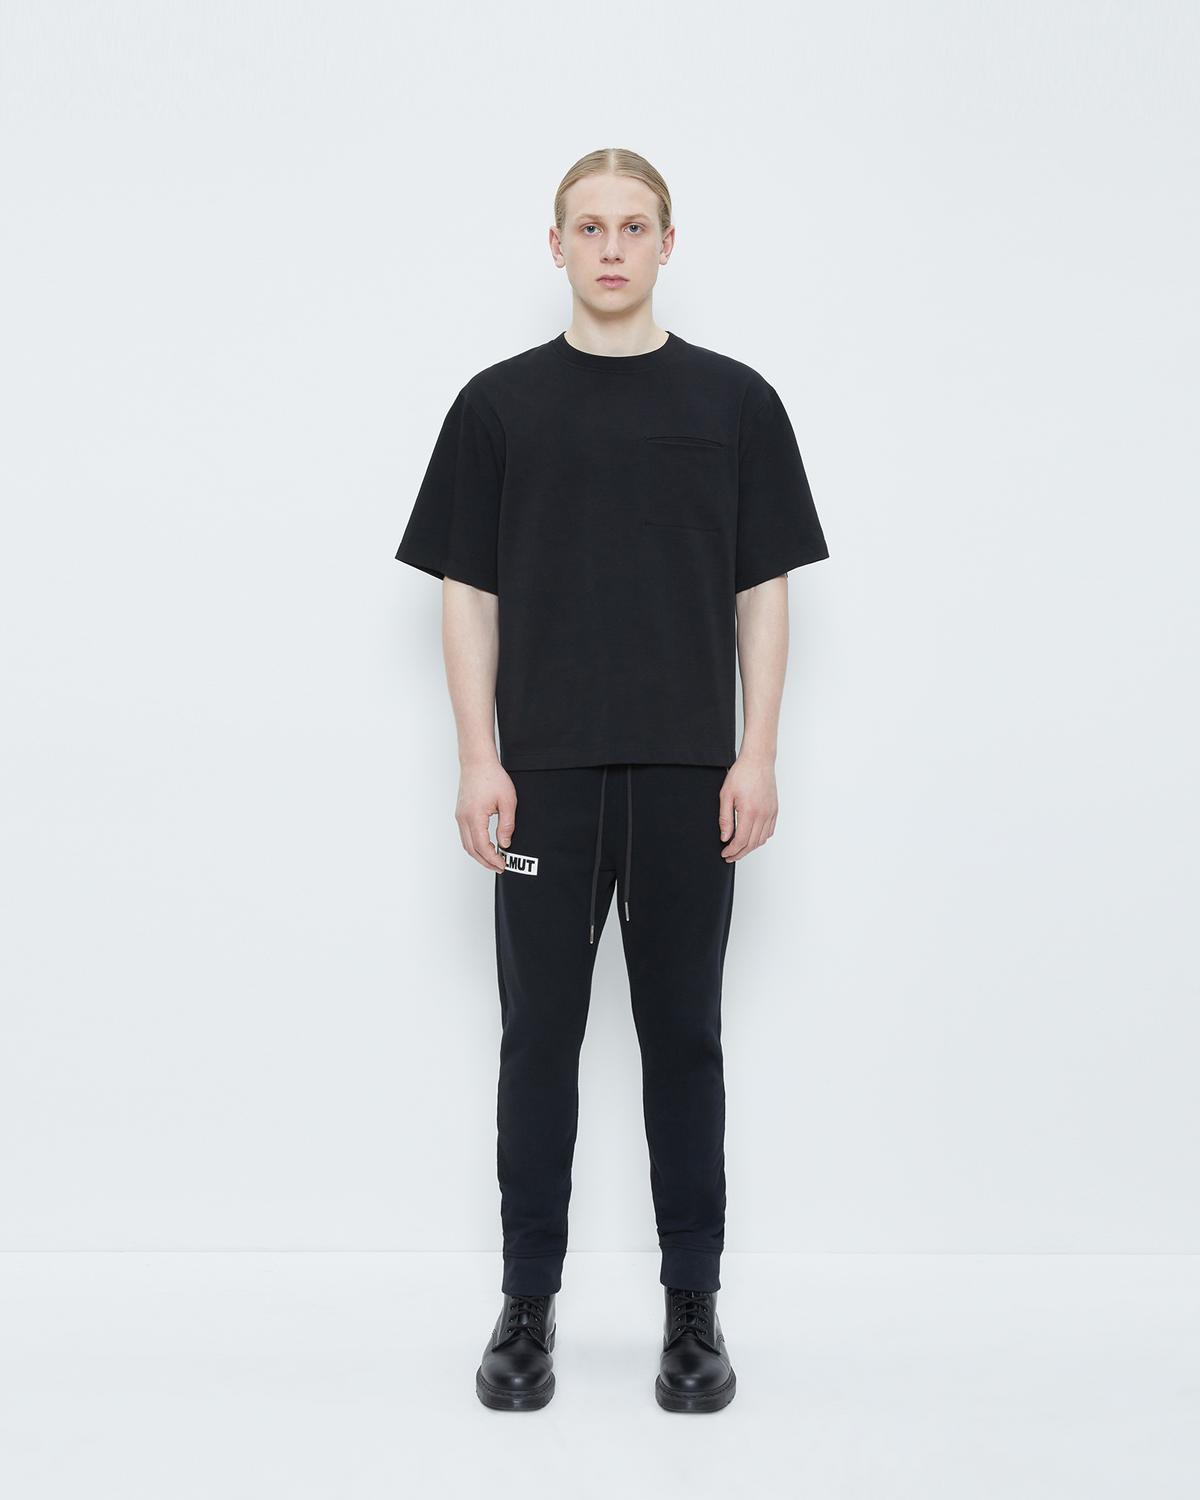 HELMUT LOGO SWEATPANTS